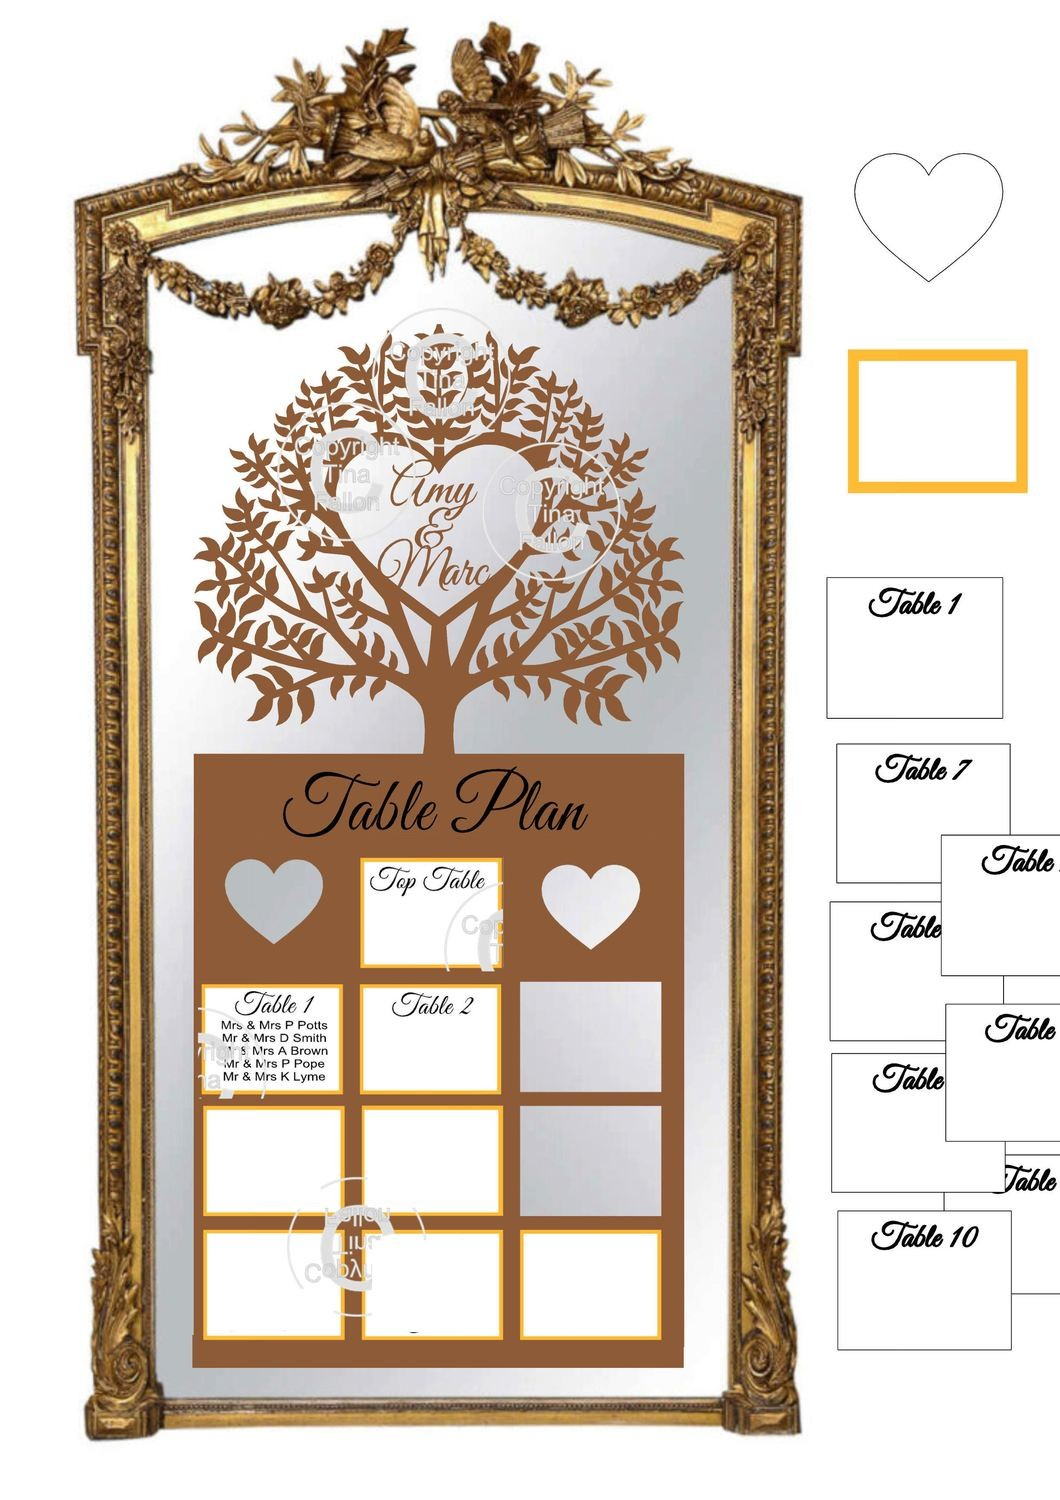 Ex Large Wedding Table Planner for 10 tables - studio fornat